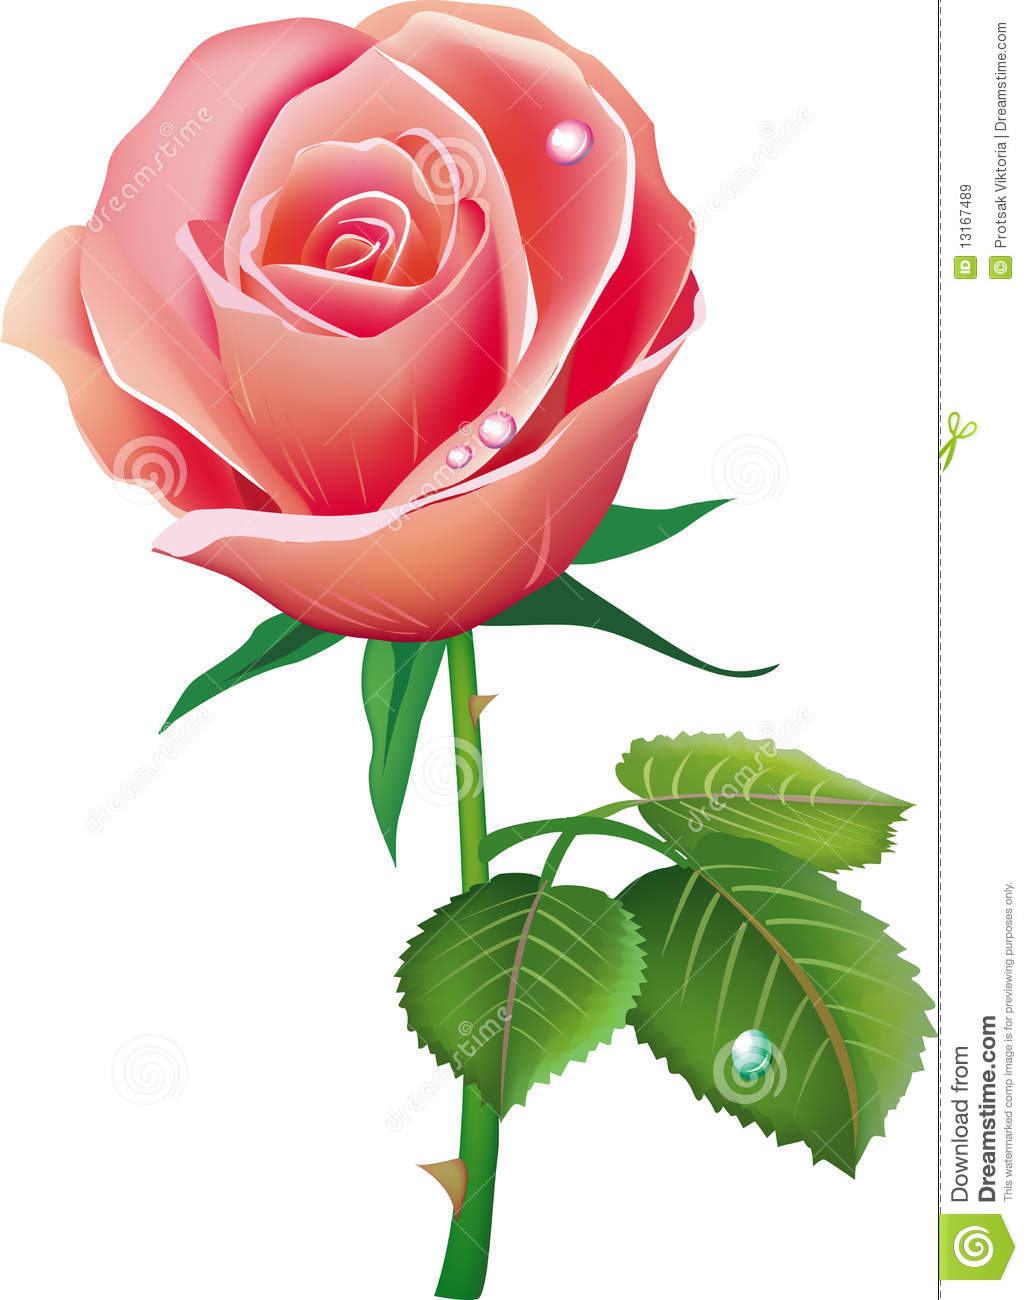 Single pink rose with petals royalty free stock images for Individual rose petals